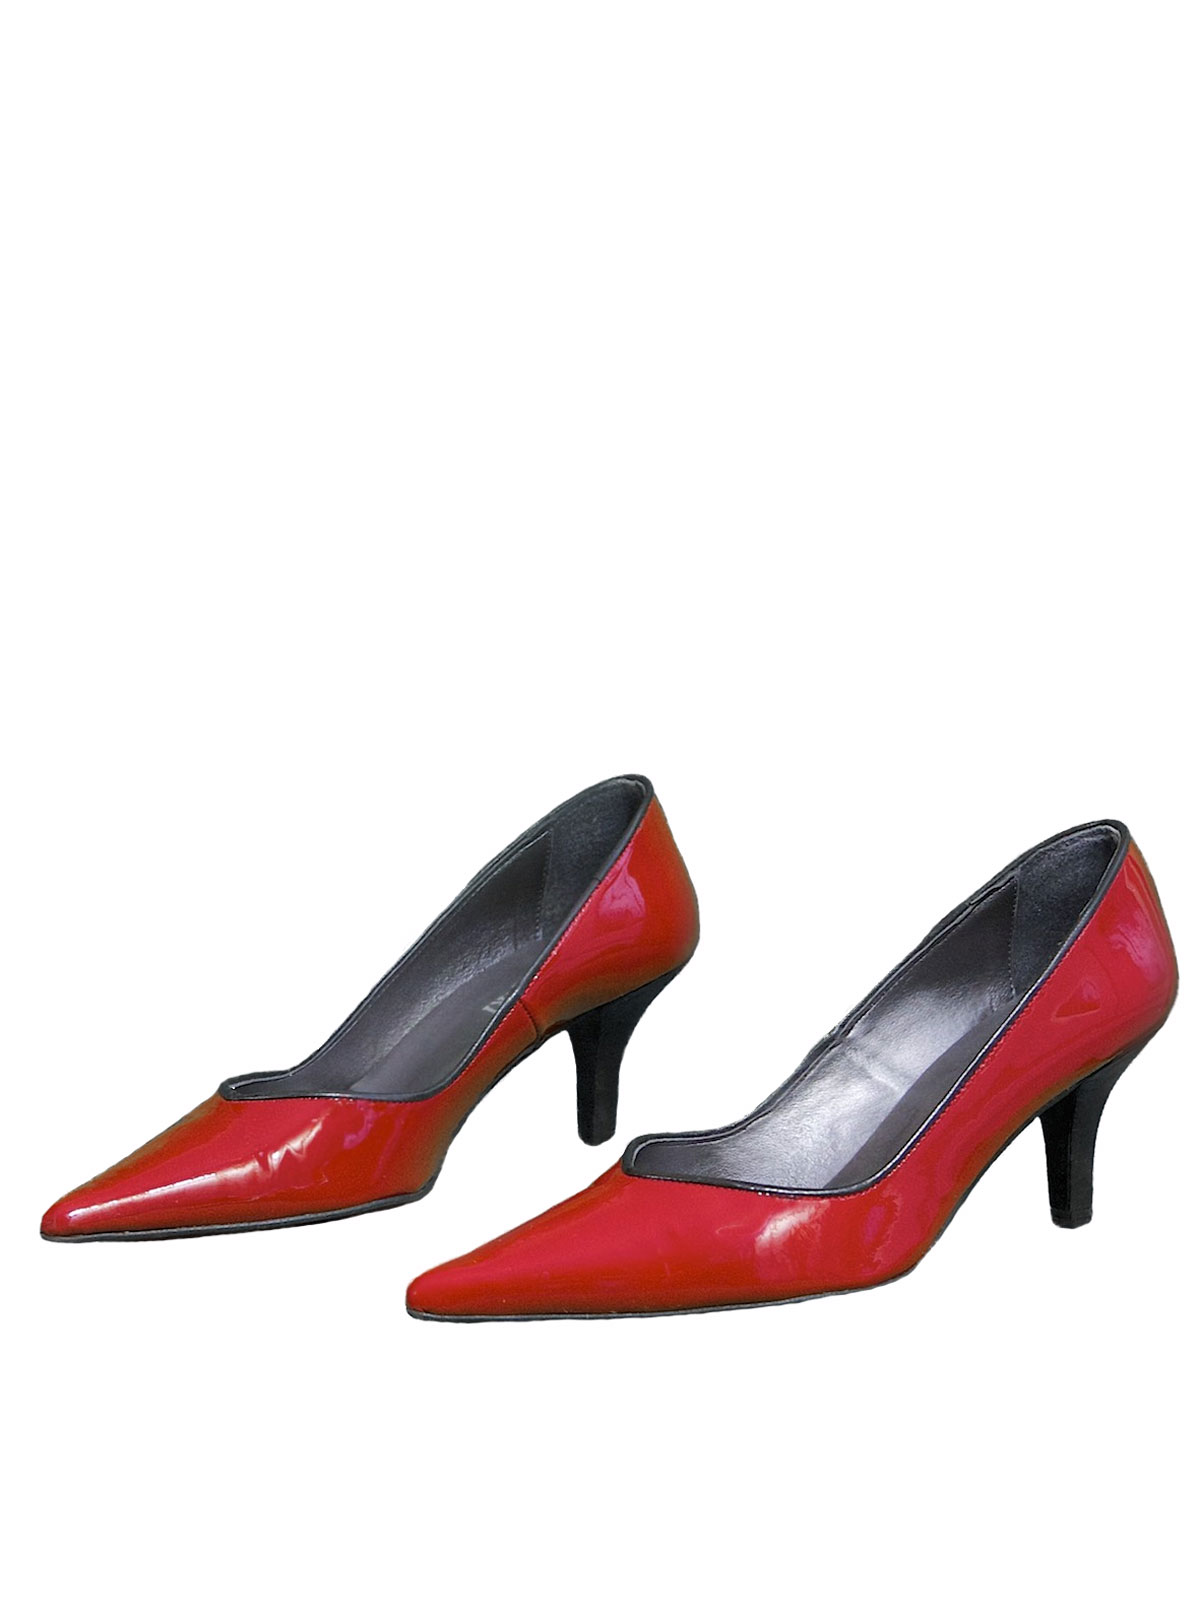 43e03eb6796 ... Gucinari Ladies Red Patent Leather Low Heel Shoes